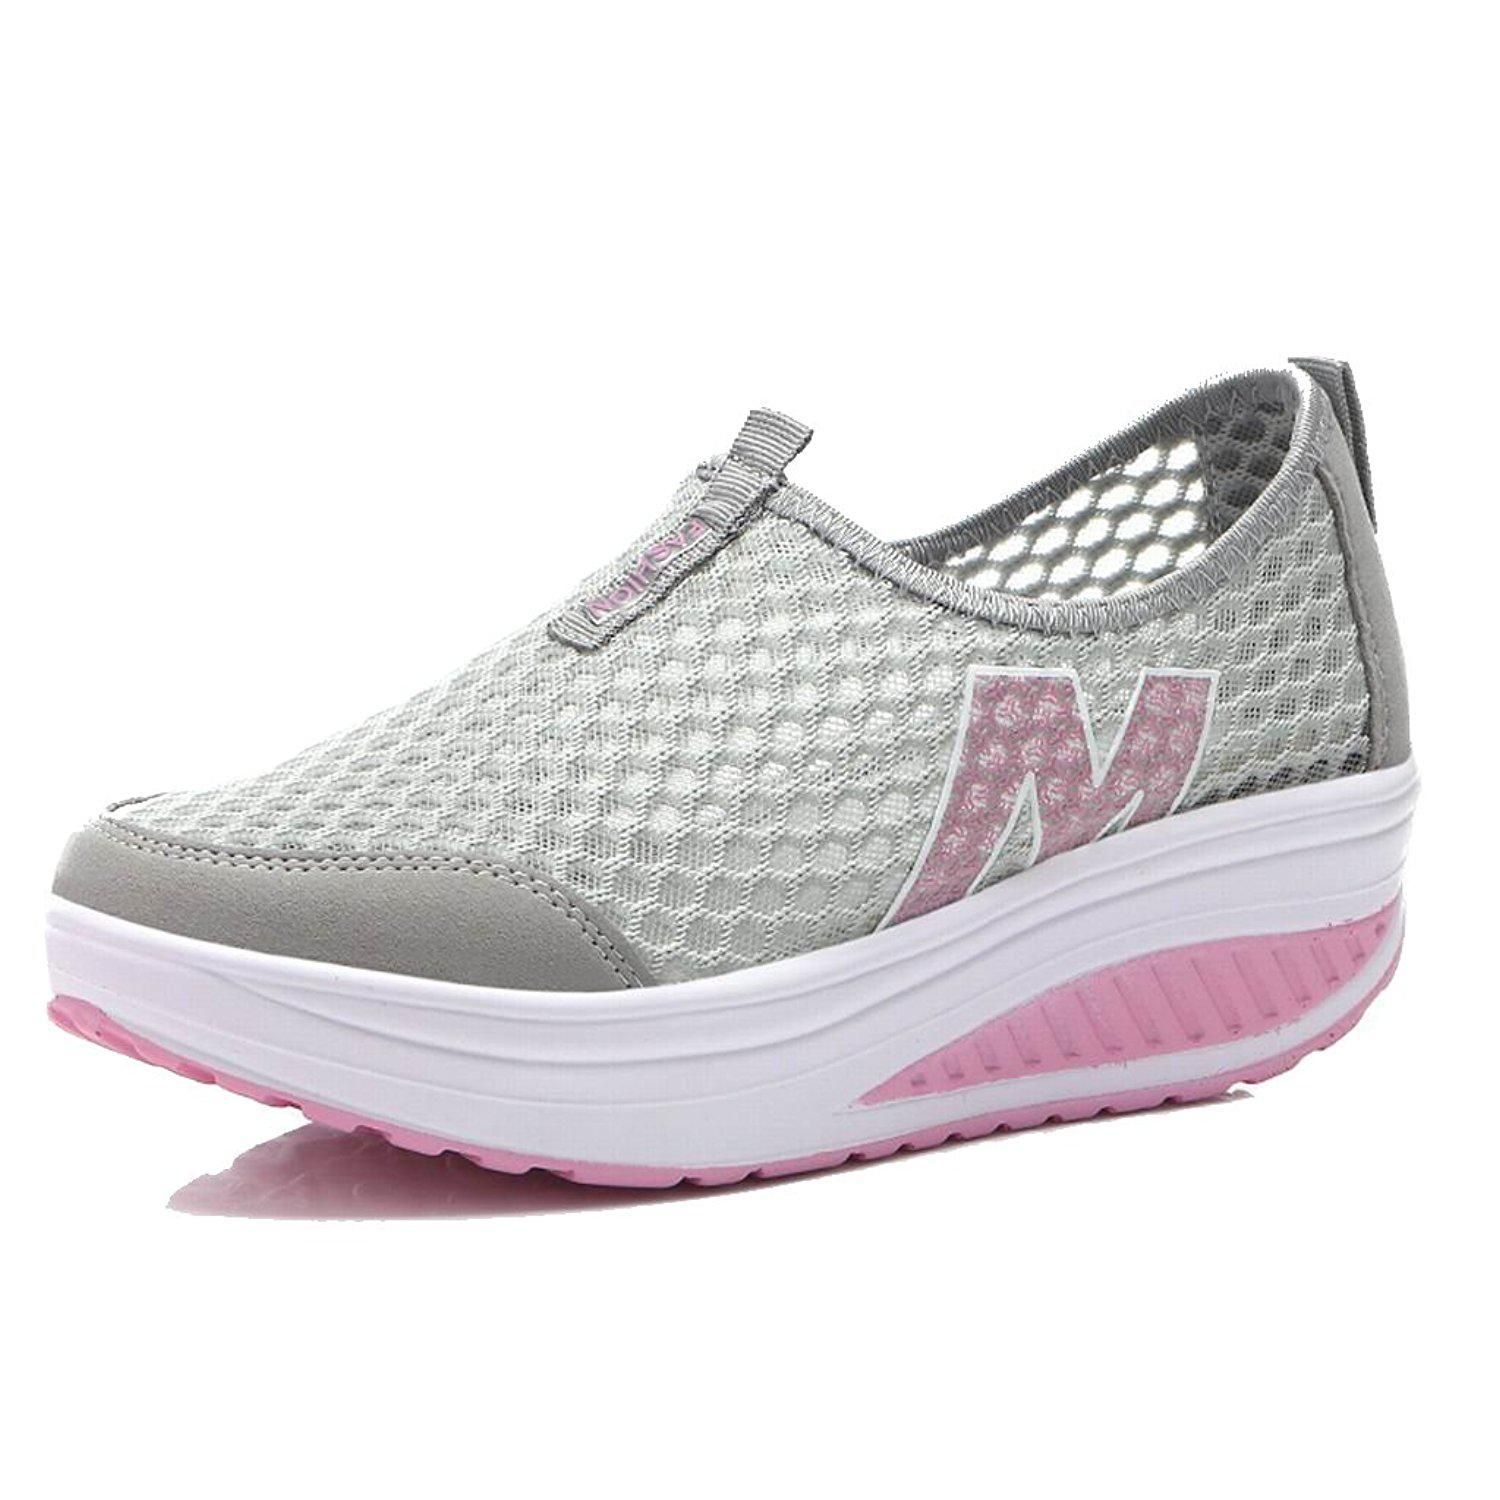 43fa1c87463 L LOUBIT Women Sneakers Comfort Slip On Wedges Shoes Breathable Mesh  Walking Shoes For WomenWalking -- This is an Amazon Affiliate link.